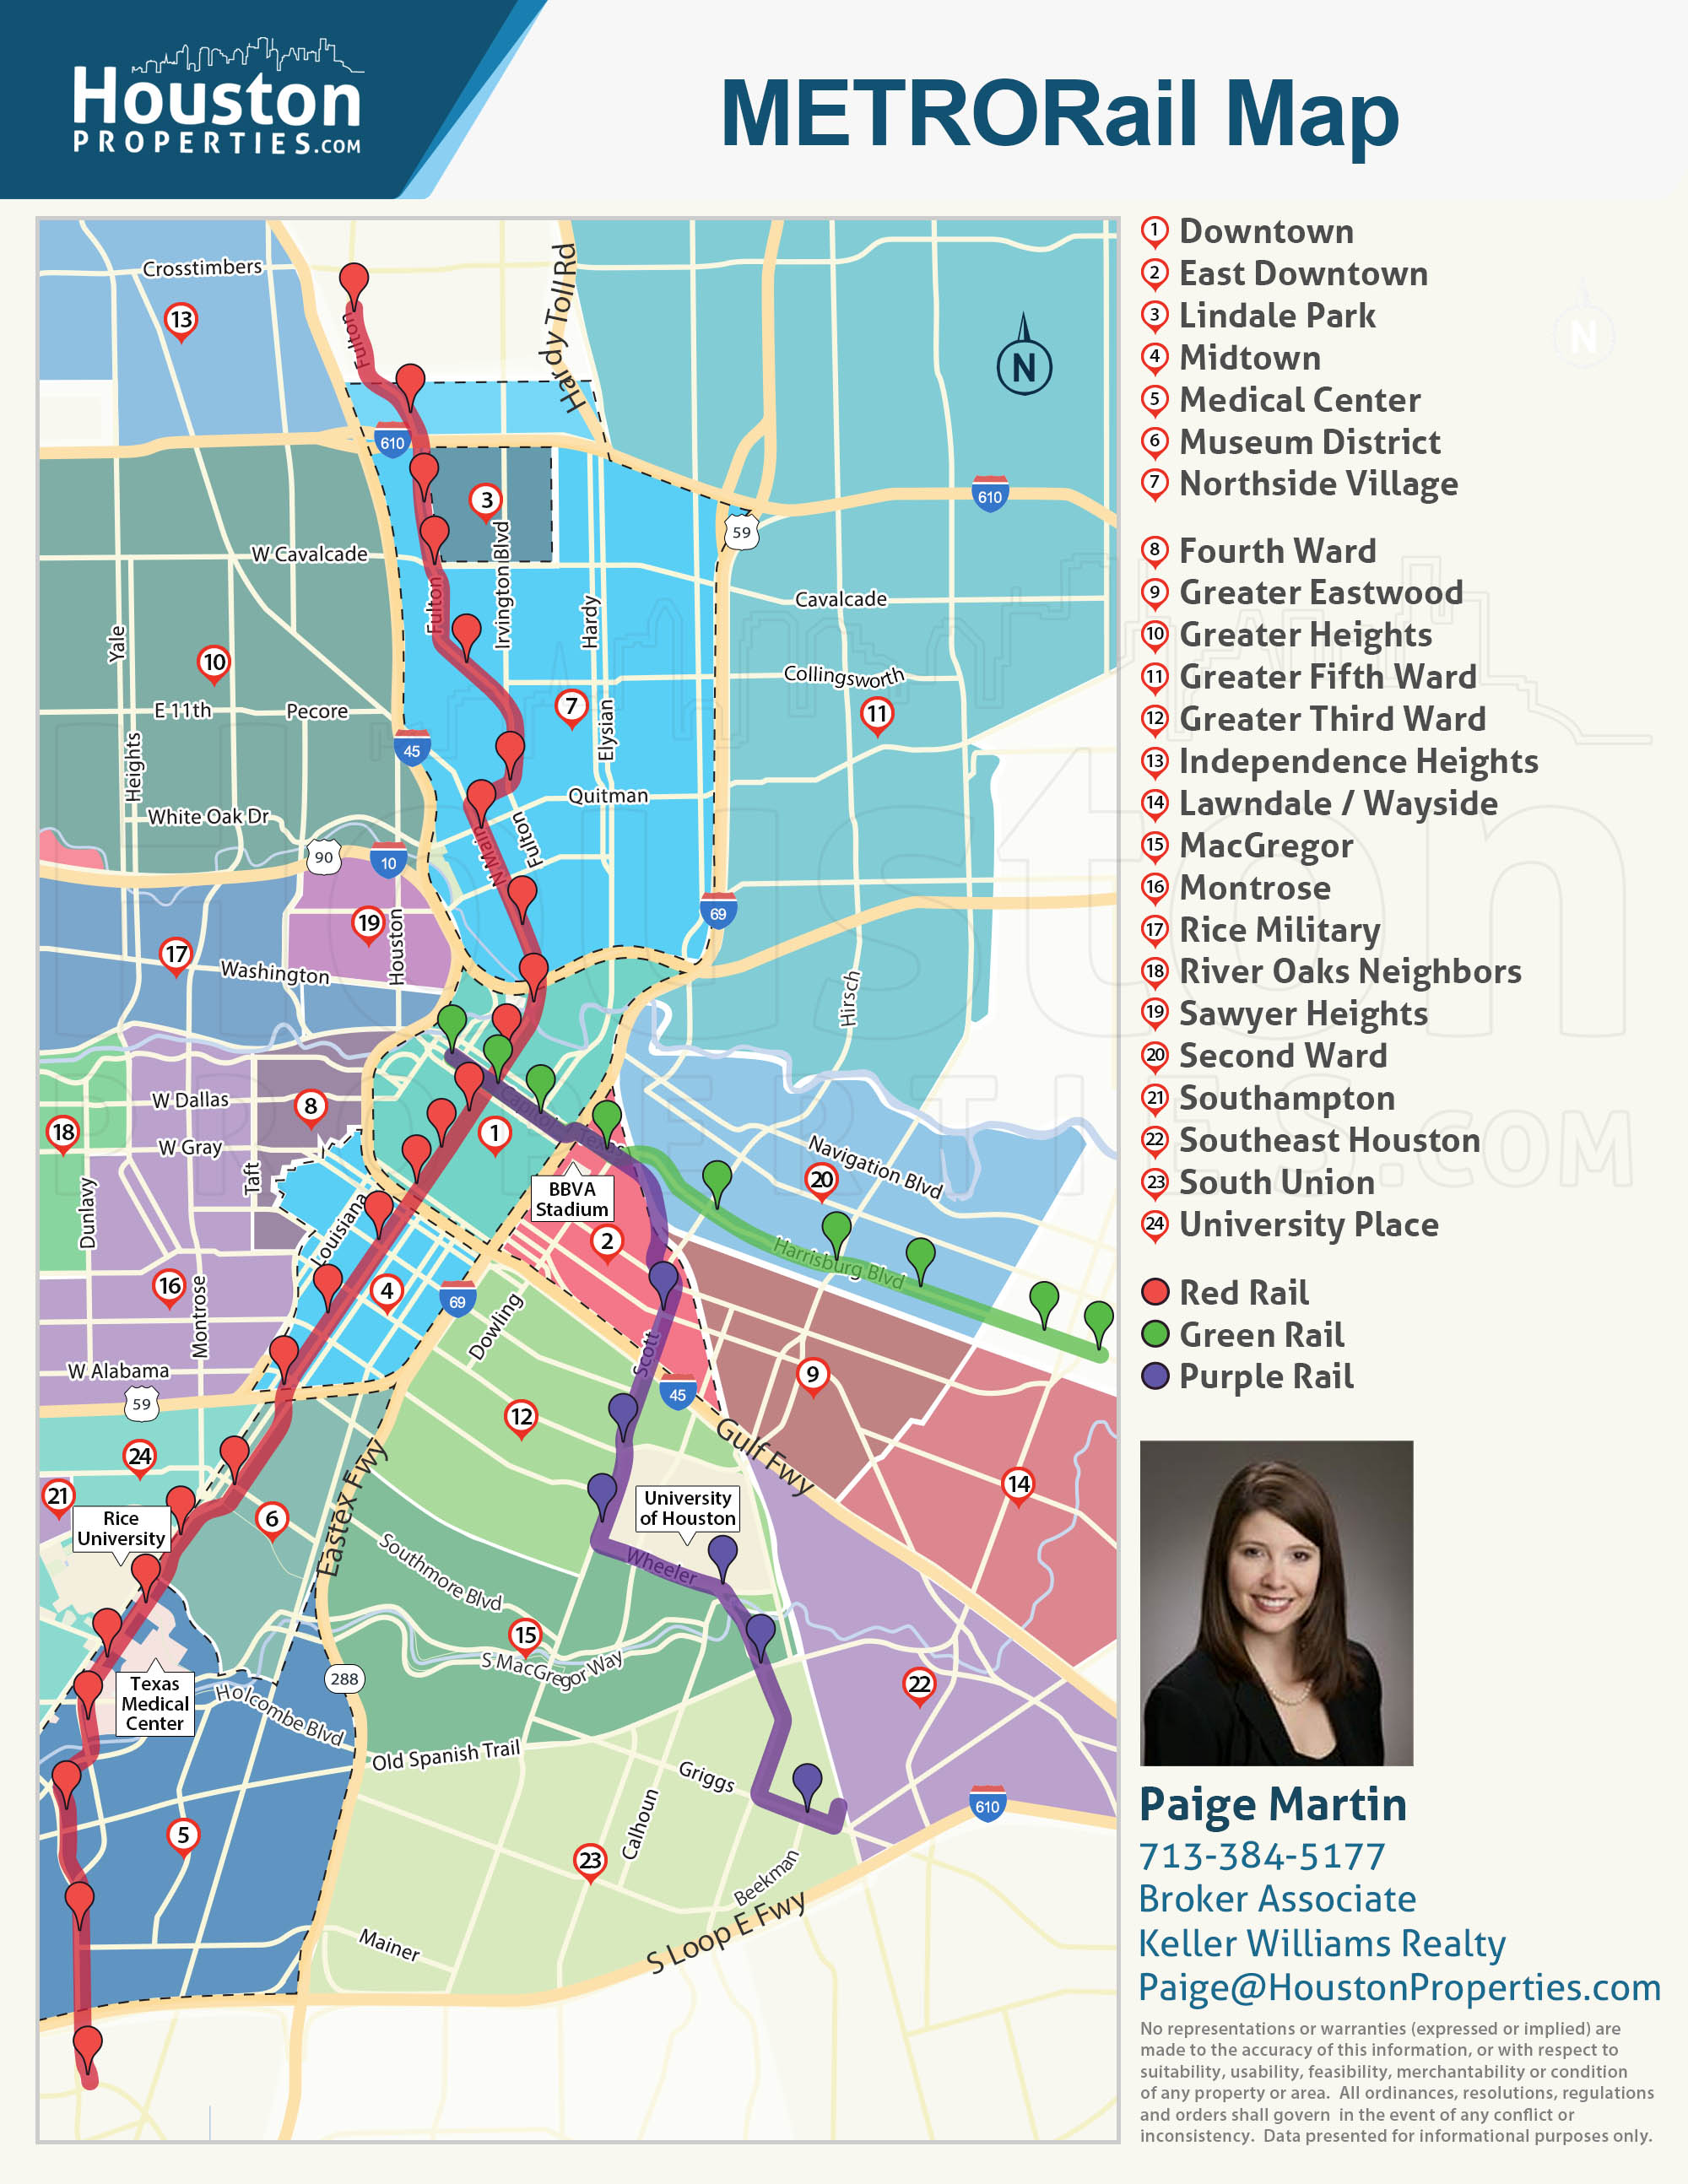 Houston METRO Rail Map Neighborhoods Near METRORail - Metro rail houston map